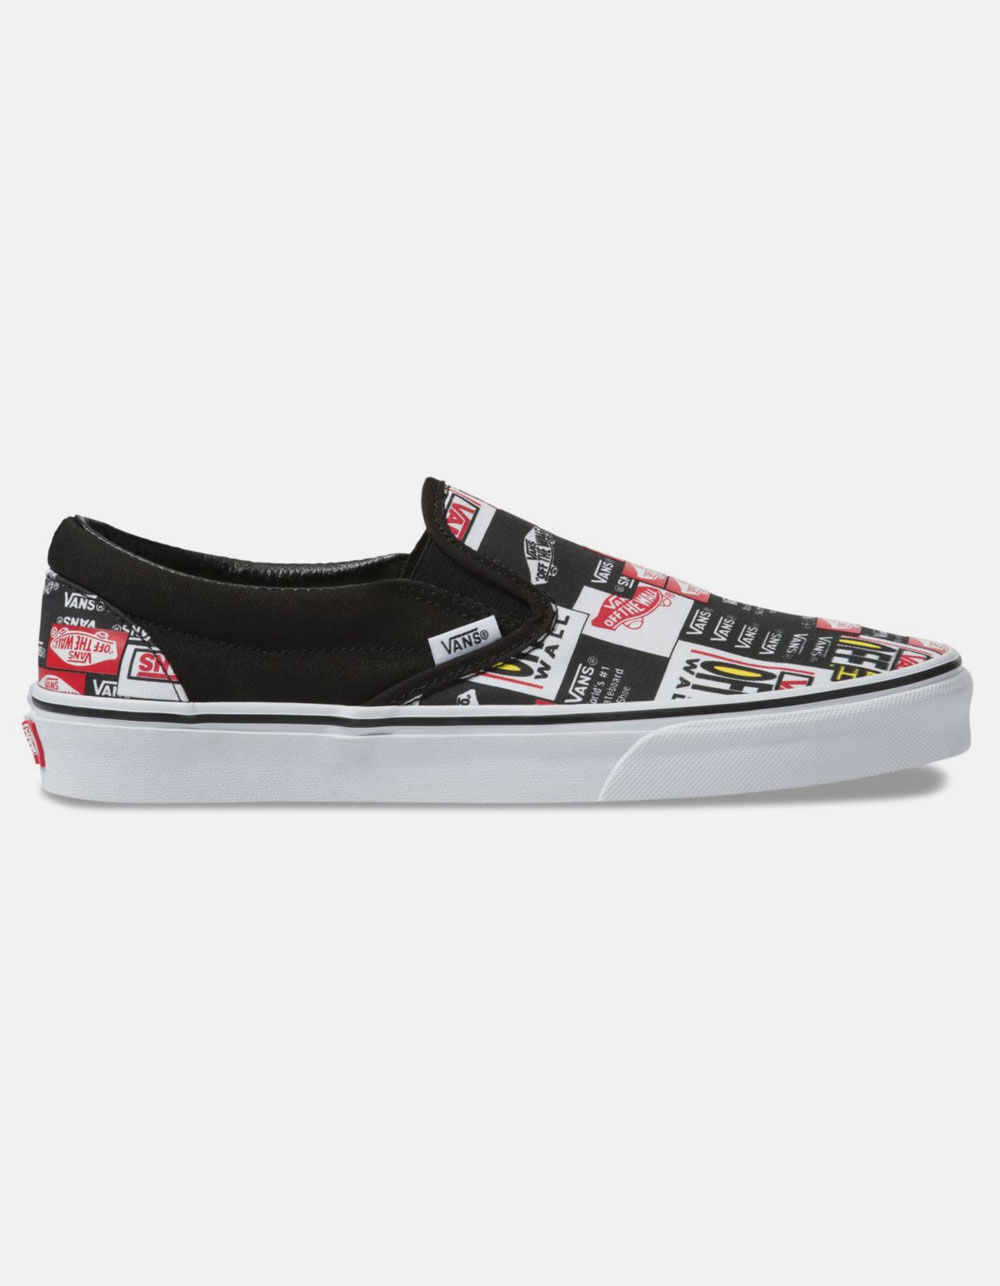 VANS Label Mix Classic Slip-On Shoes